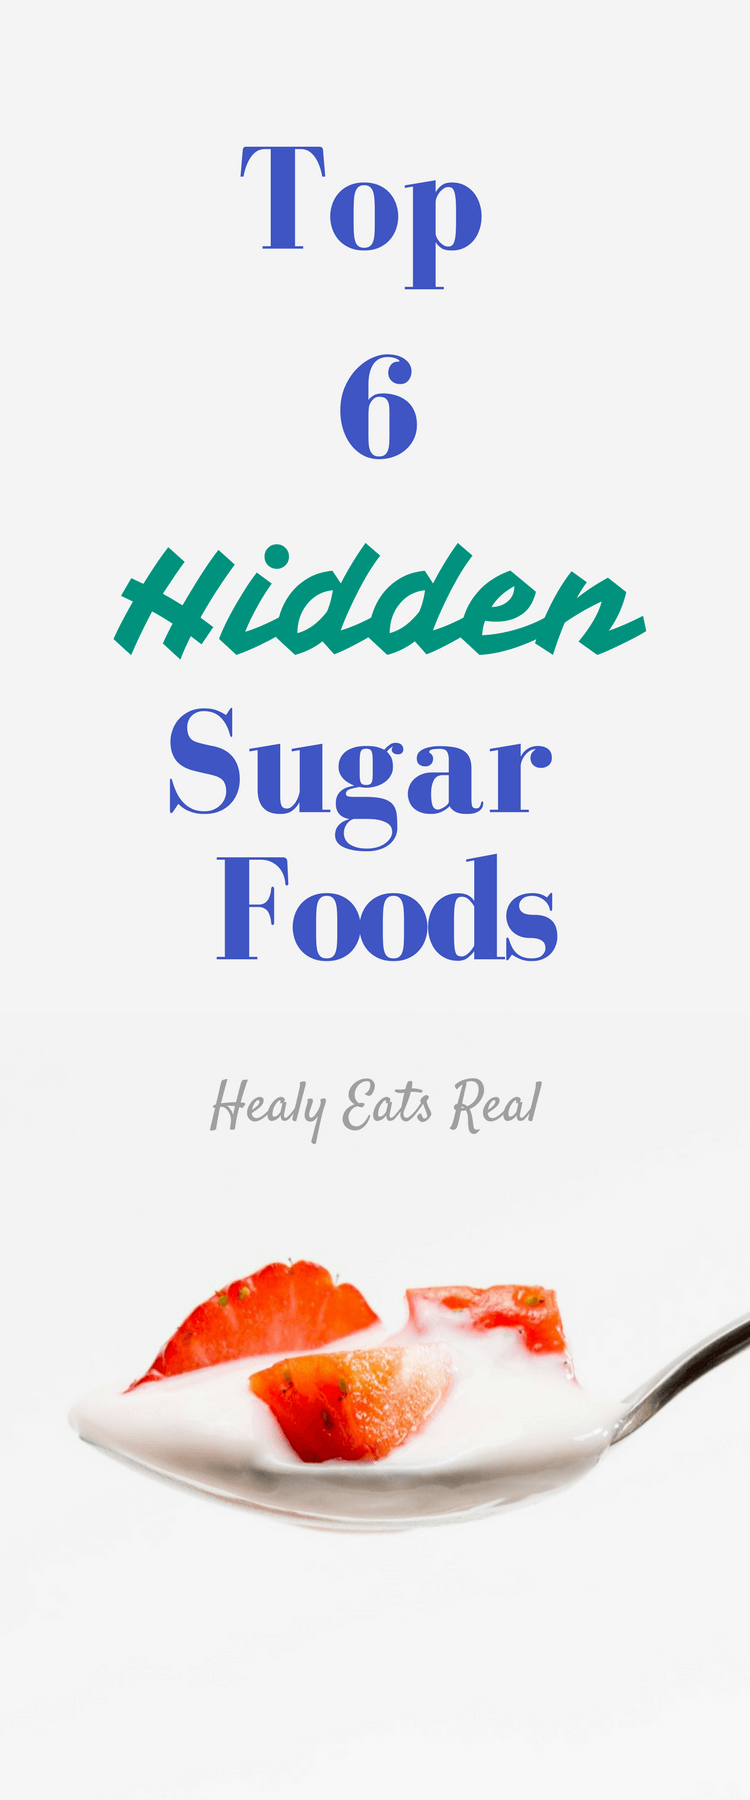 Top 6 Hidden Sugar Foods